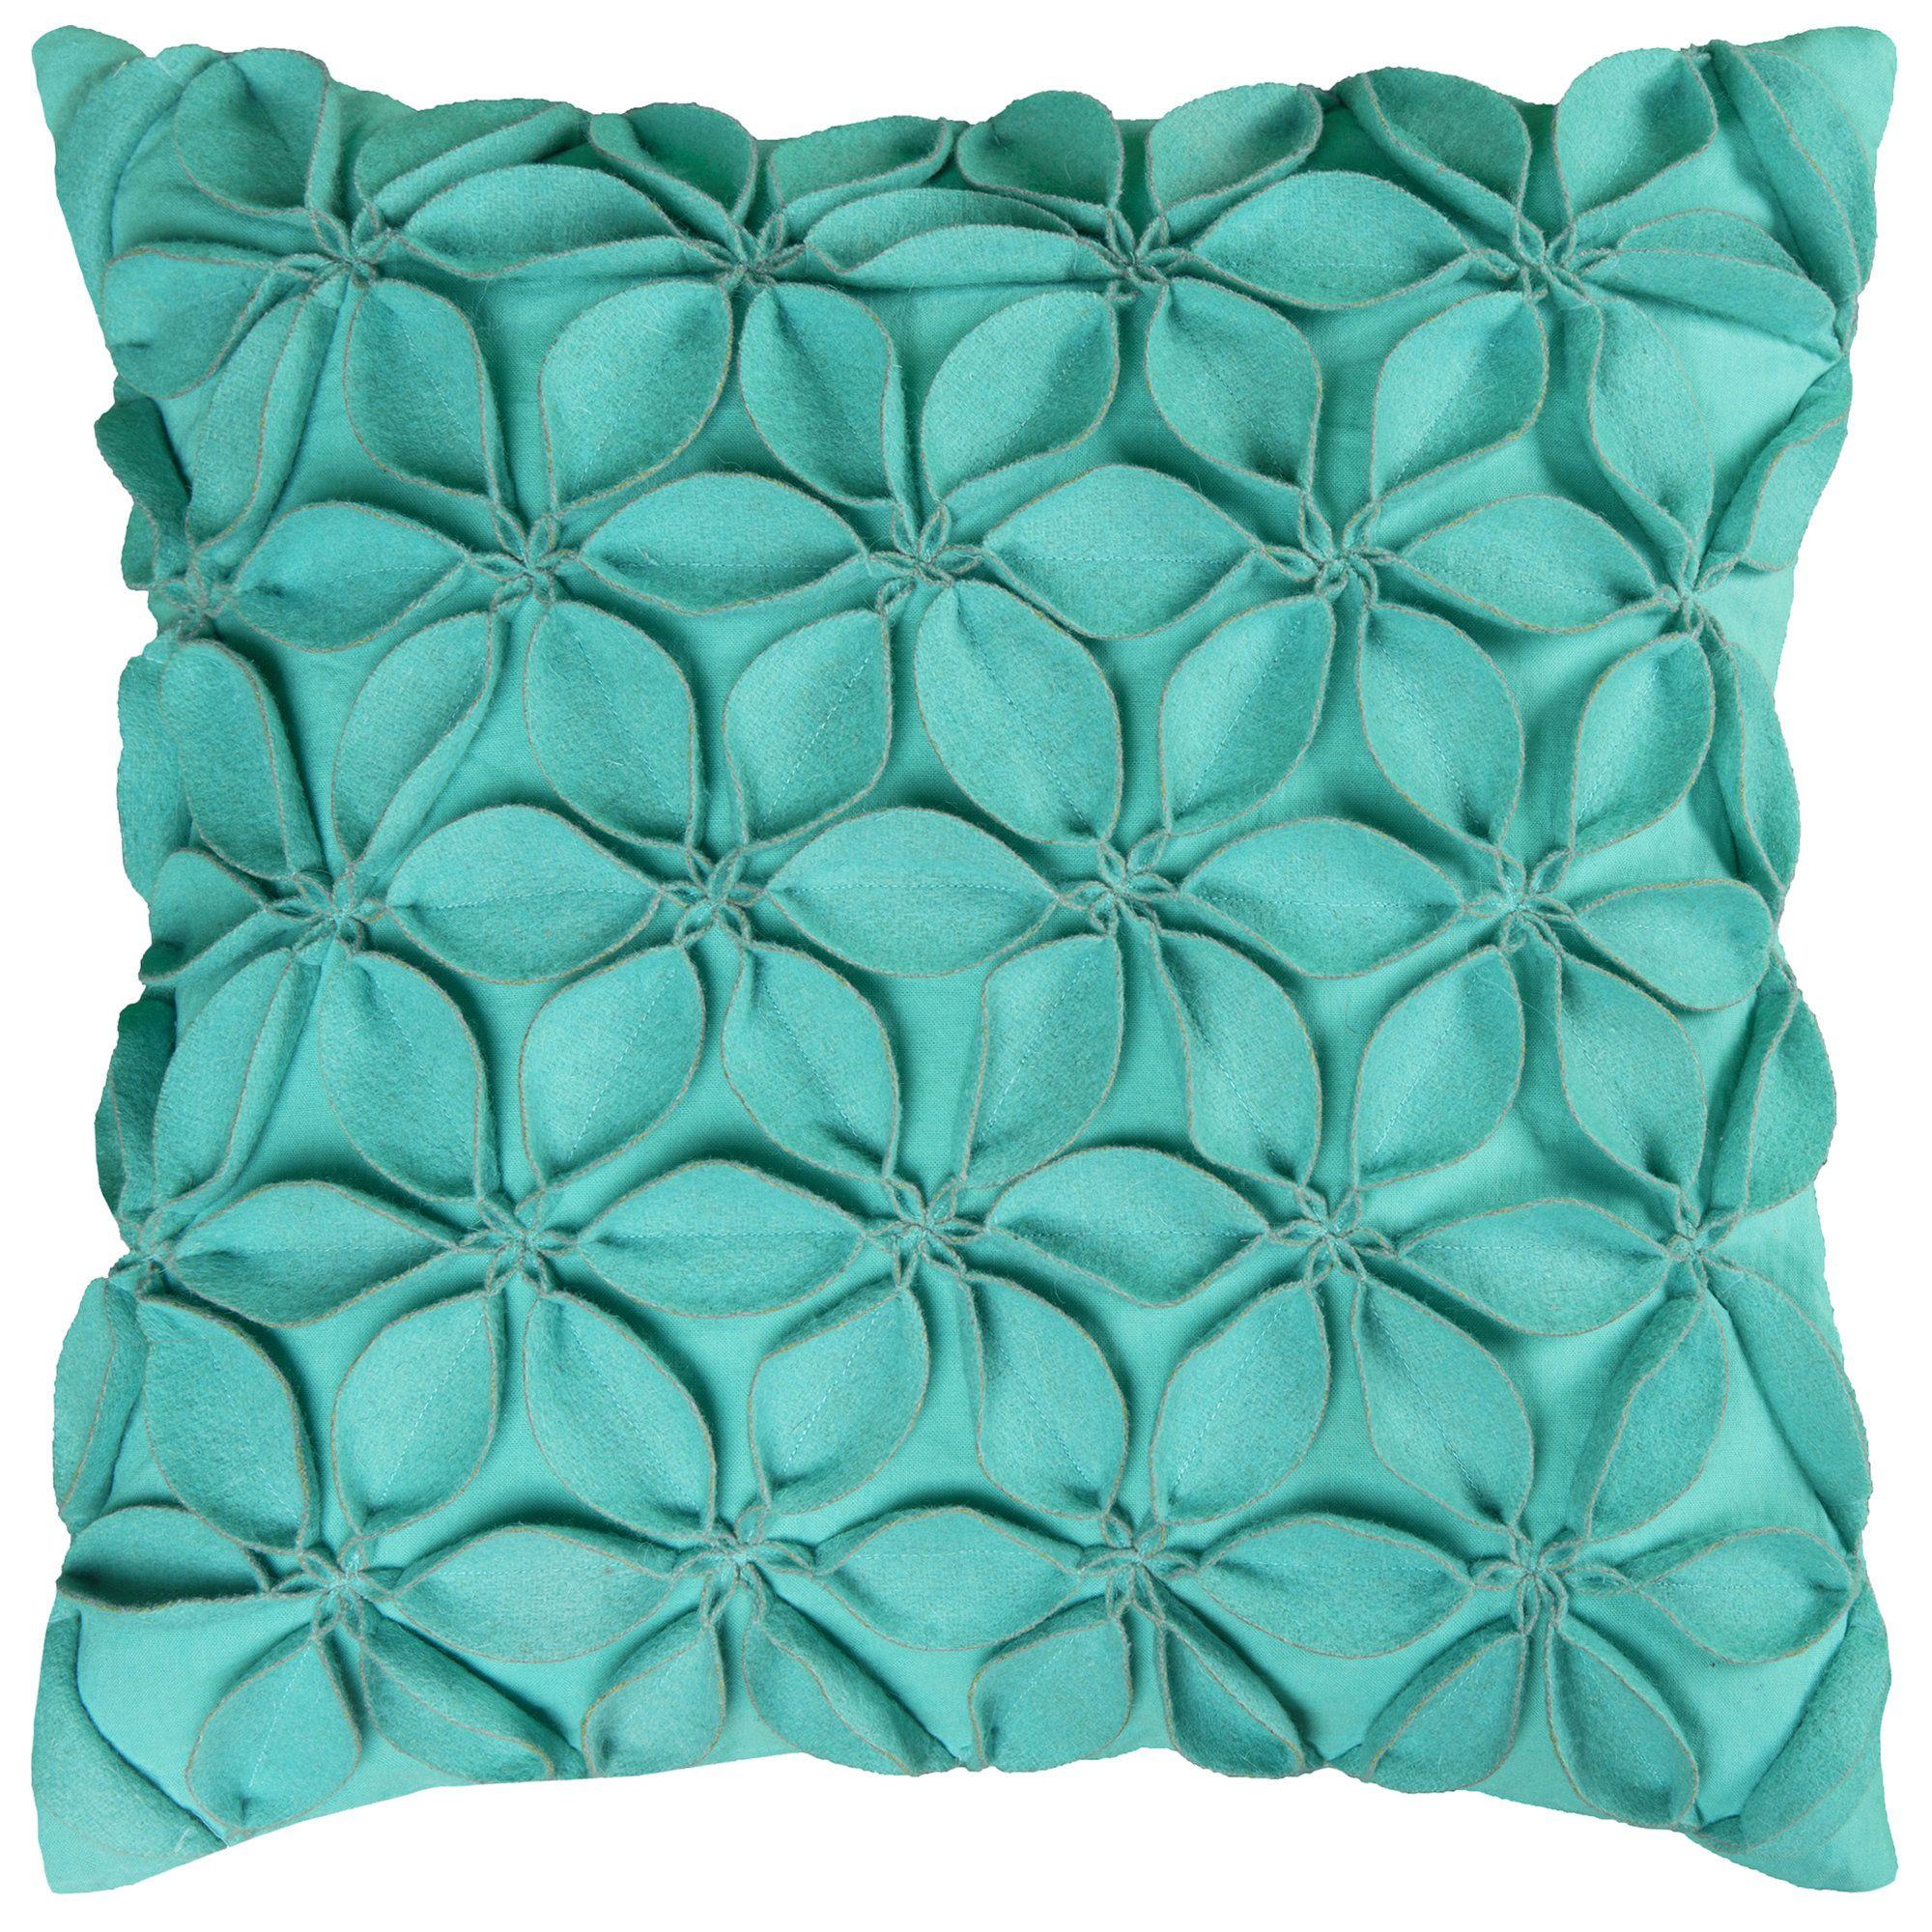 Florent throw pillow throw pillows and products